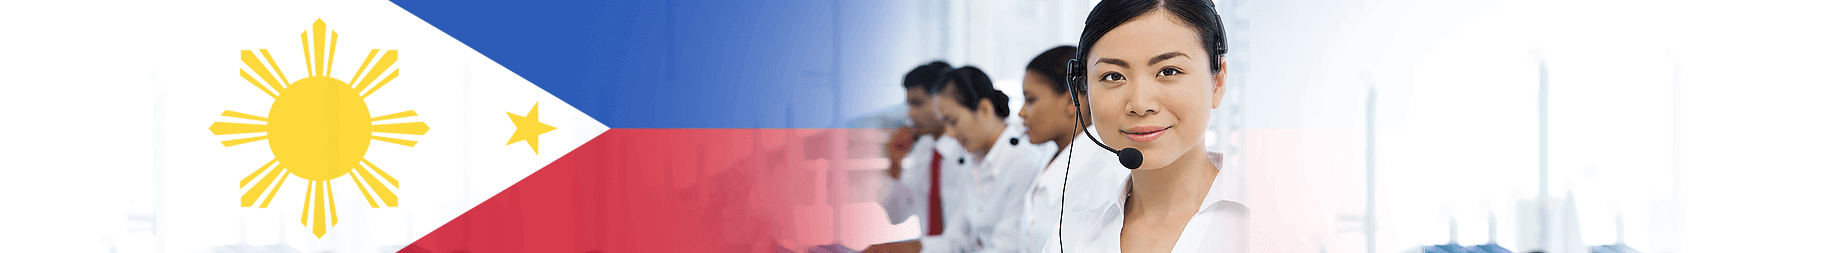 Philippines Call Center | Outsourcing to The Philippines | Philippines Outsourcing | Call Centers in The Philippines | Outsource | Sales | Filipino Call Centers | Philippines Call Centers | Offshore Outsourcing | The Philippines | Asia | Low Cost